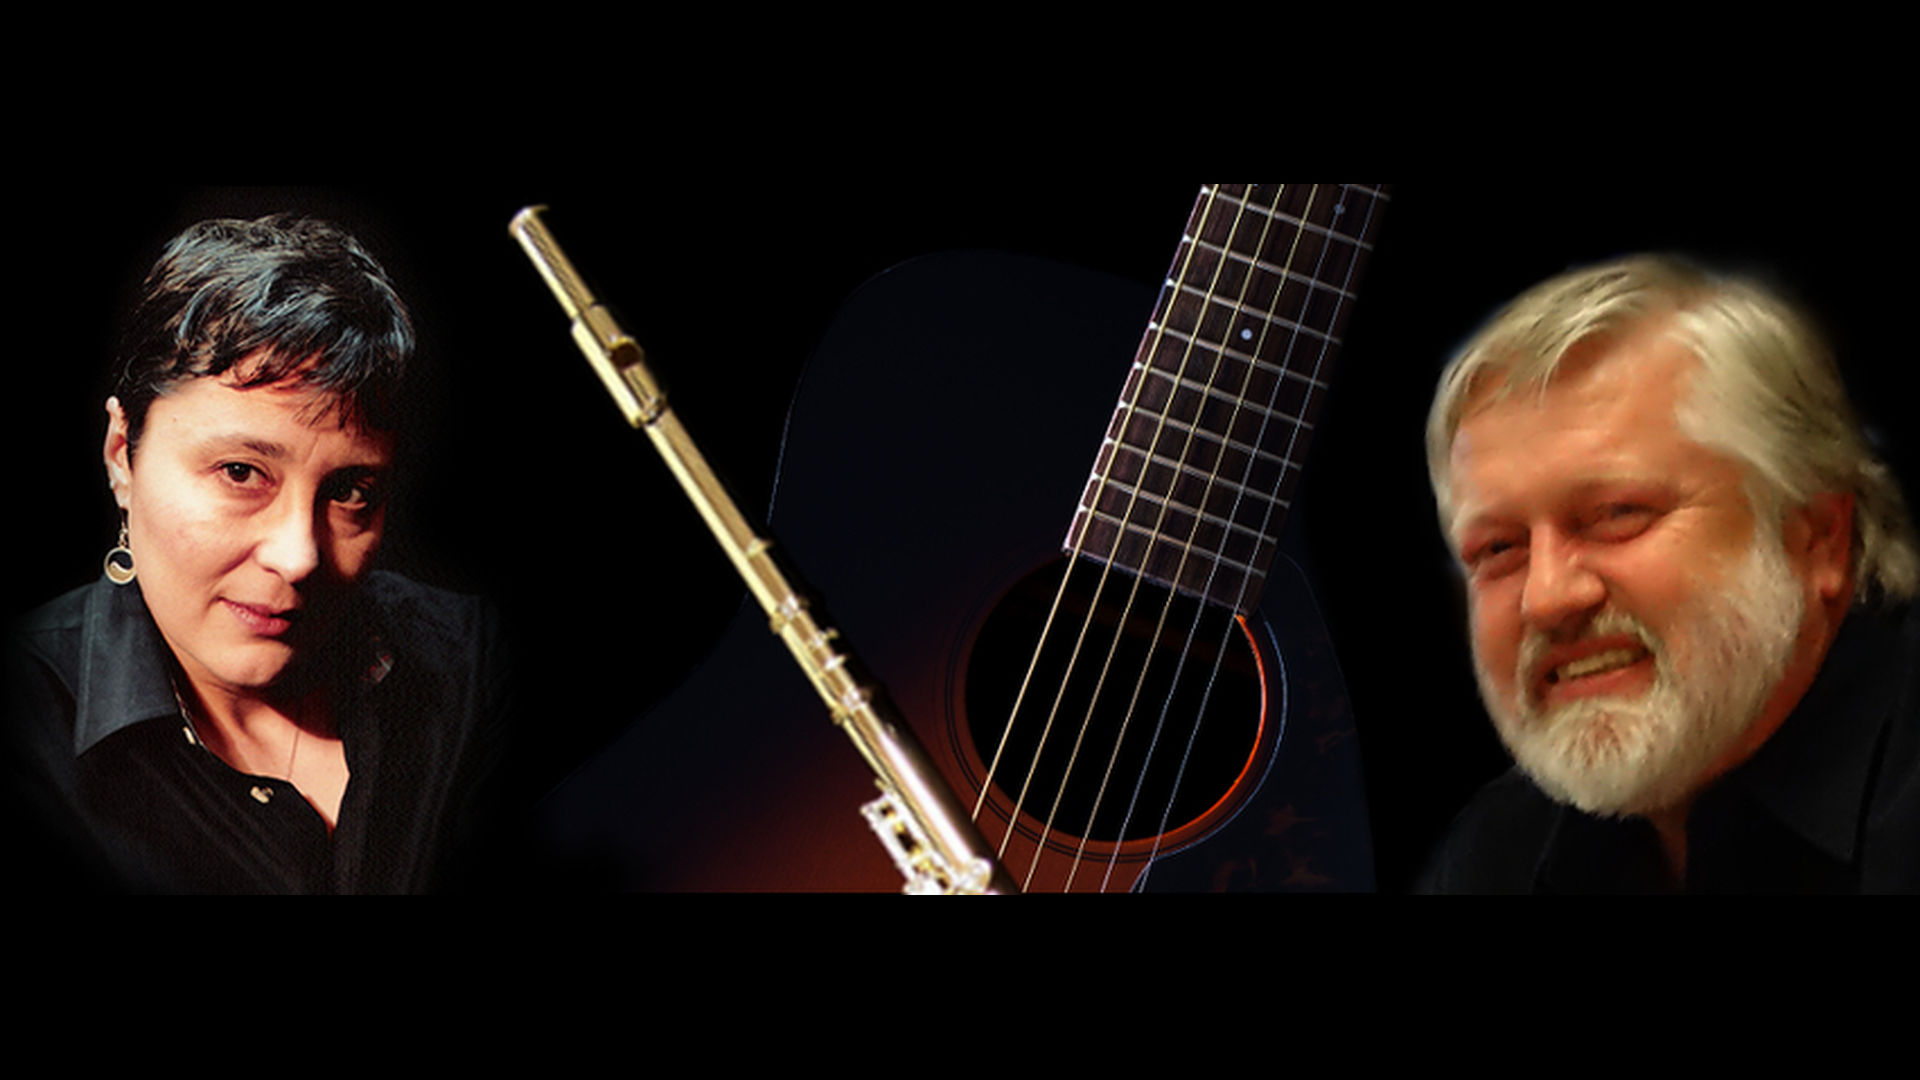 Zentao Music, power-driven flute and acoustic guitar with D. L. Keur and Forrest W. Lineberry, a husband and wife team